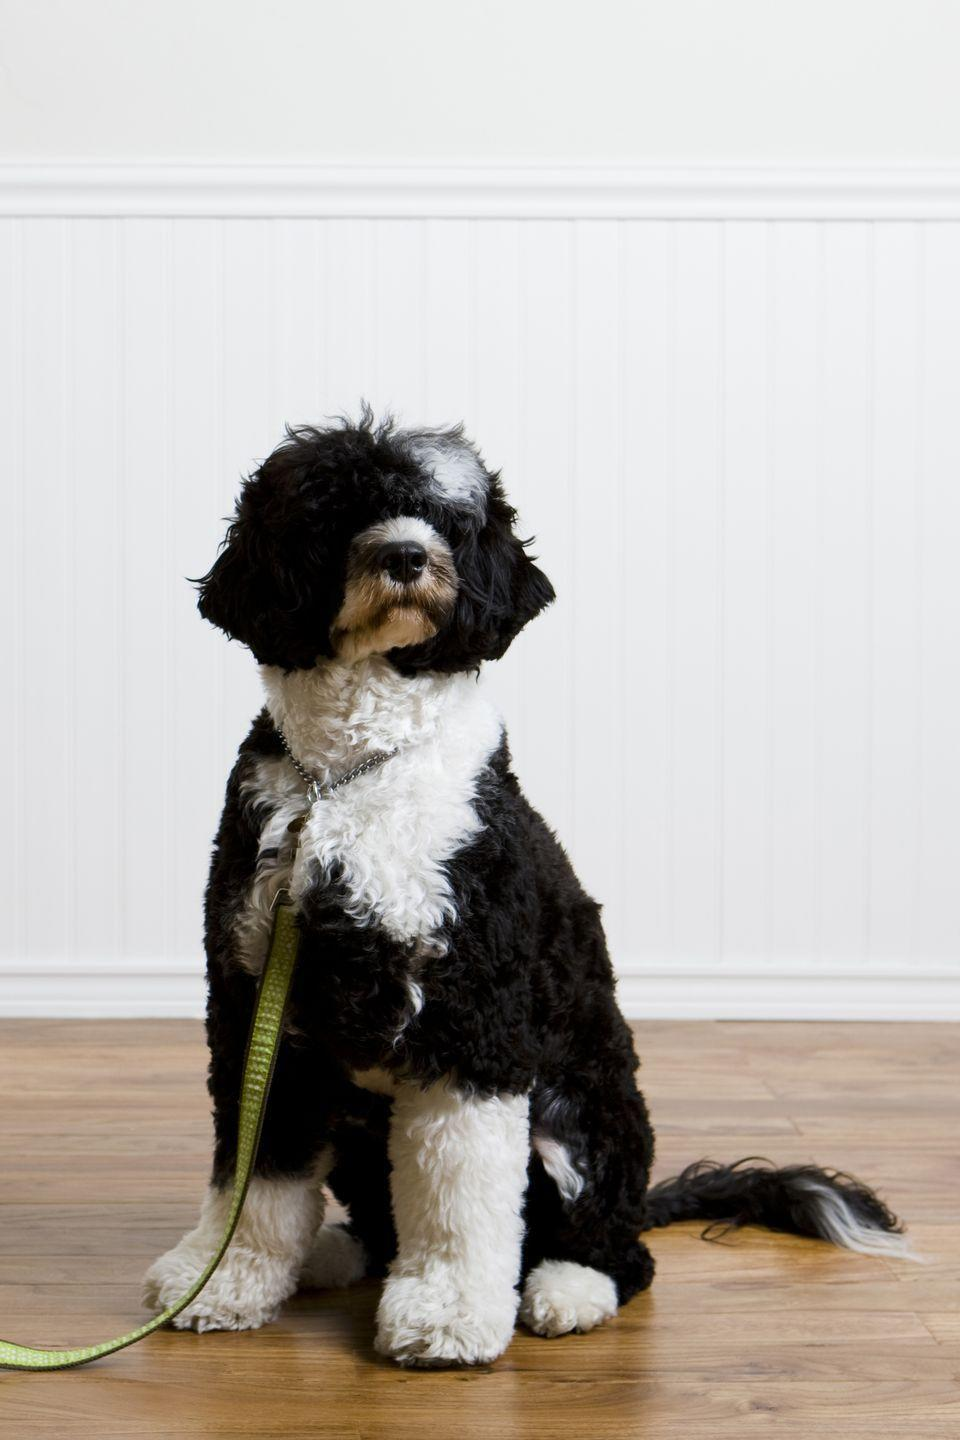 """<p>If you recognize these medium-sized furballs, here's why. """"First Dogs"""" Sunny and Bo Obama helped put the curly-haired <a href=""""https://www.goodhousekeeping.com/life/pets/advice/g1825/medium-sized-dogs/?slide=17"""" rel=""""nofollow noopener"""" target=""""_blank"""" data-ylk=""""slk:Portugese water dogs"""" class=""""link rapid-noclick-resp"""">Portugese water dogs</a> in the spotlight. Don't worry, their playful and laid-back personalities make great additions to any household. They even adapt well to apartment living for those in small spaces. </p>"""